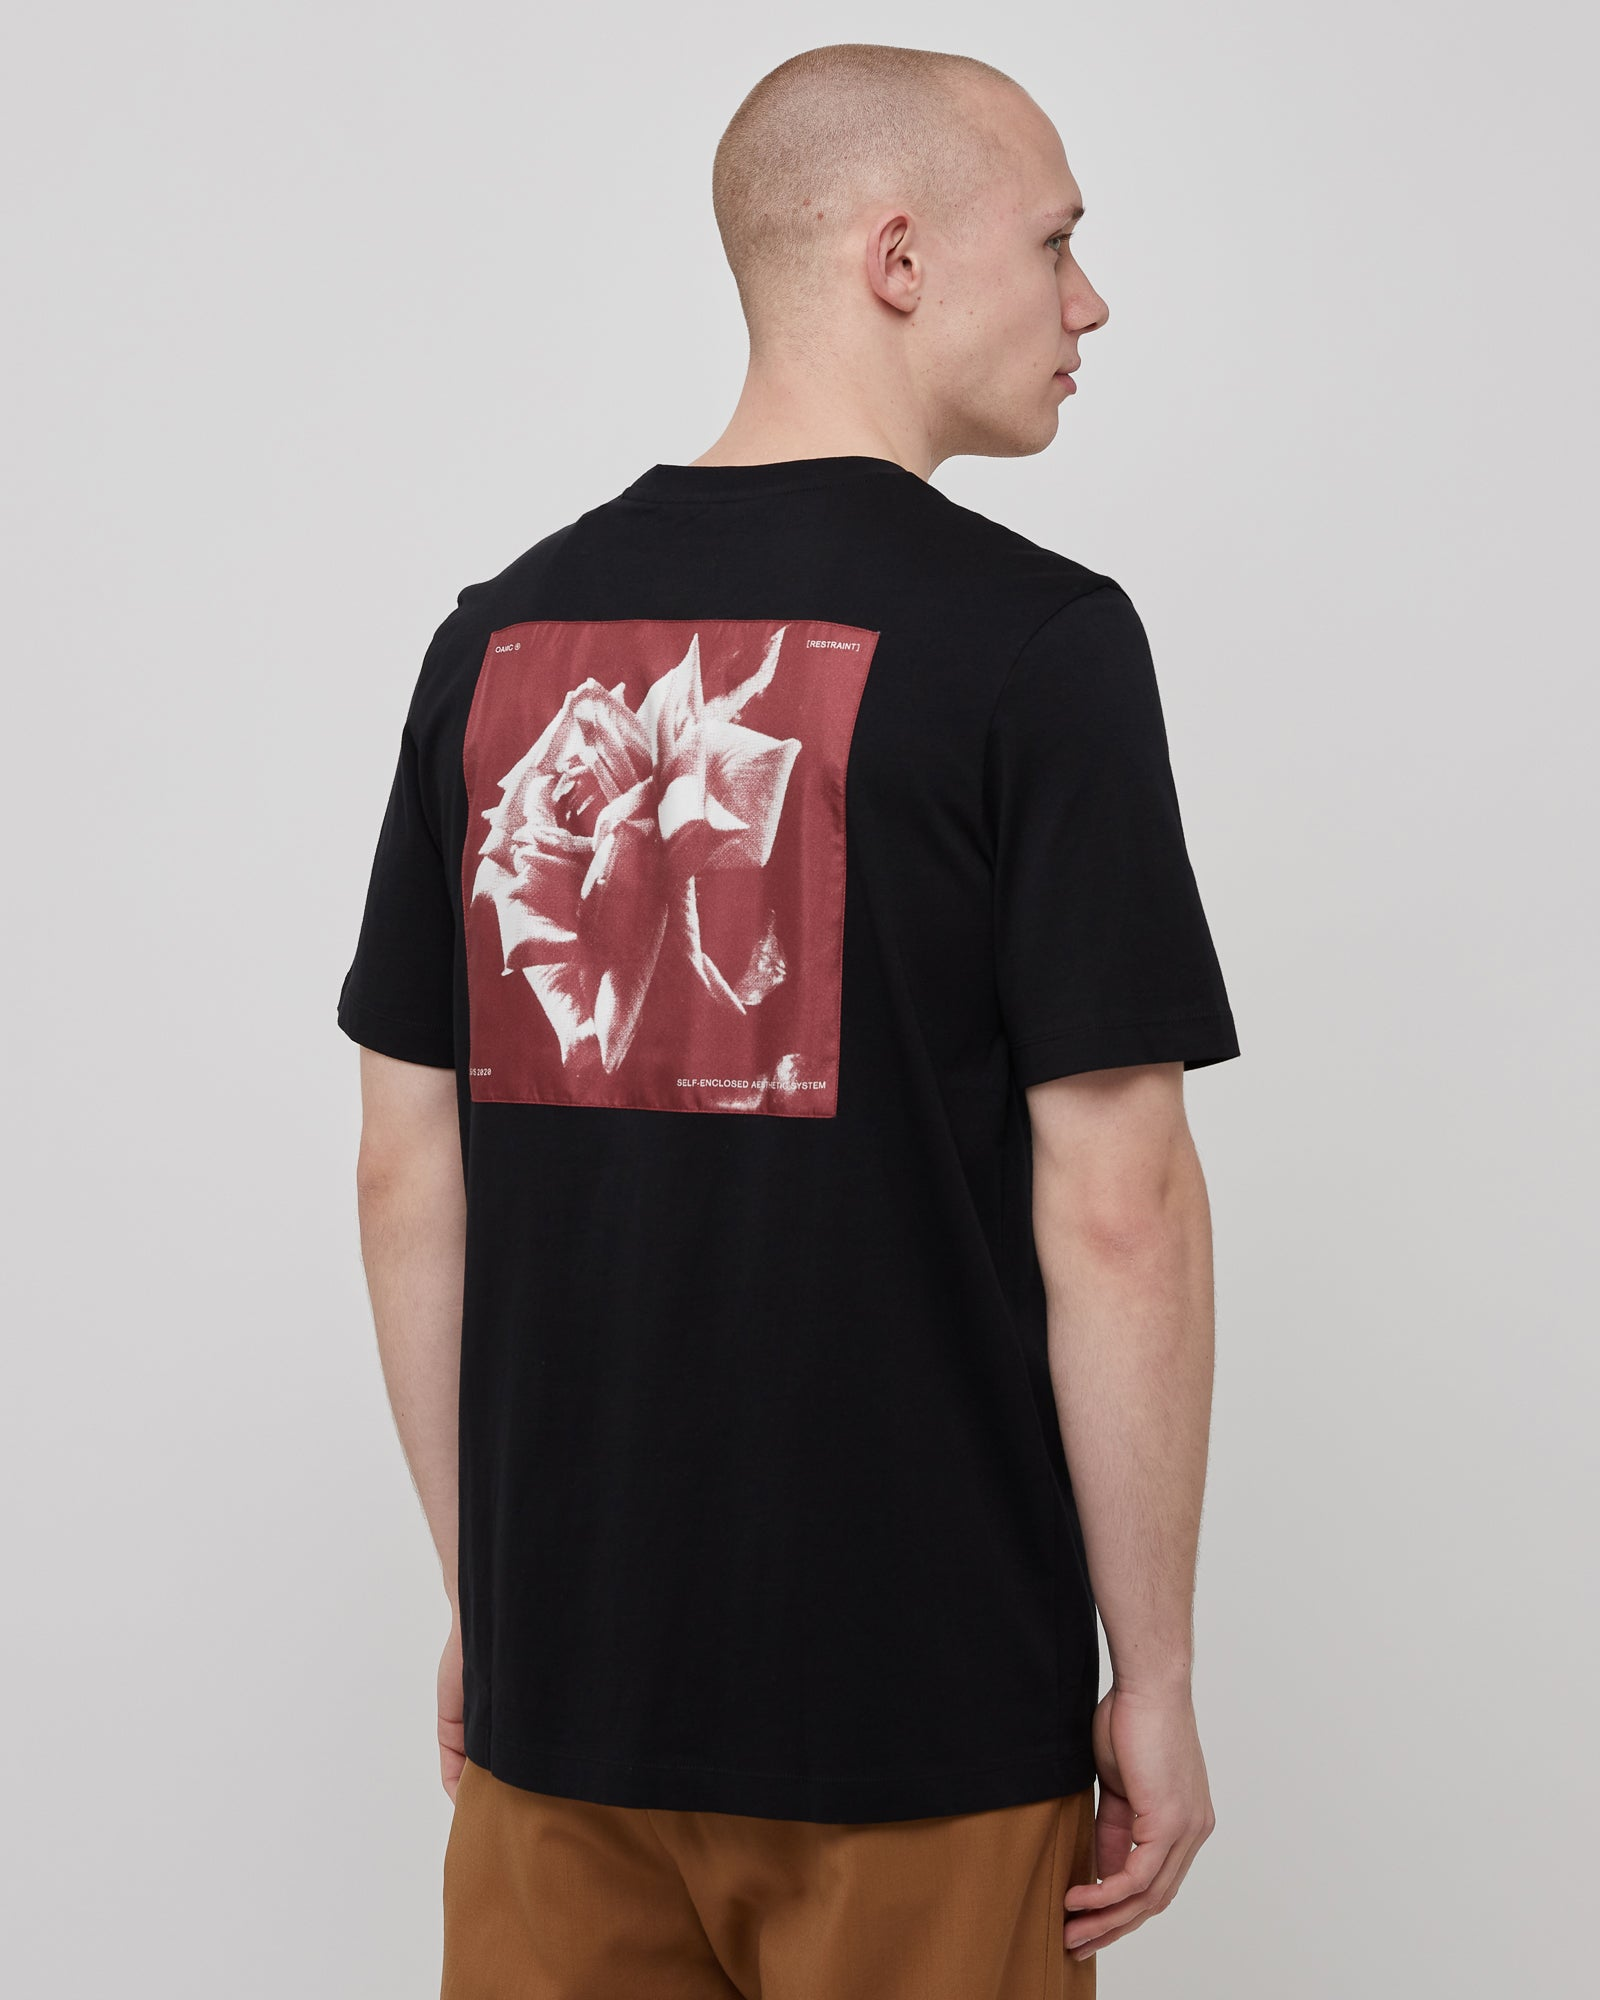 GT21 T-Shirt in Black